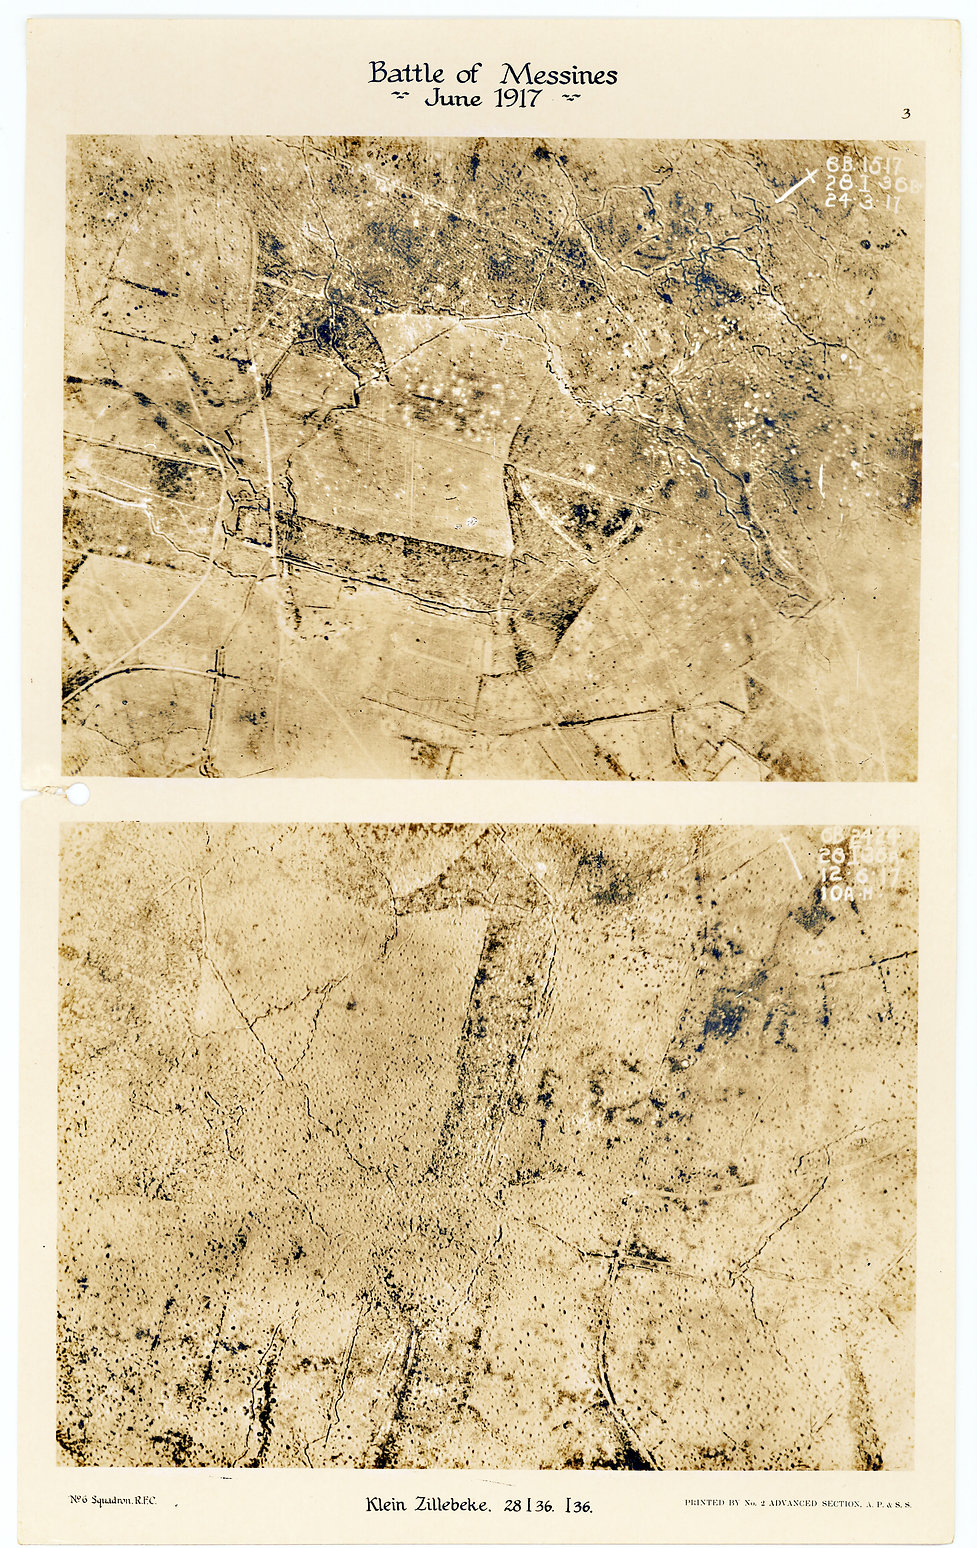 6 Squadron aerial photos of Klein Zillebeke before and after Battle of Messines